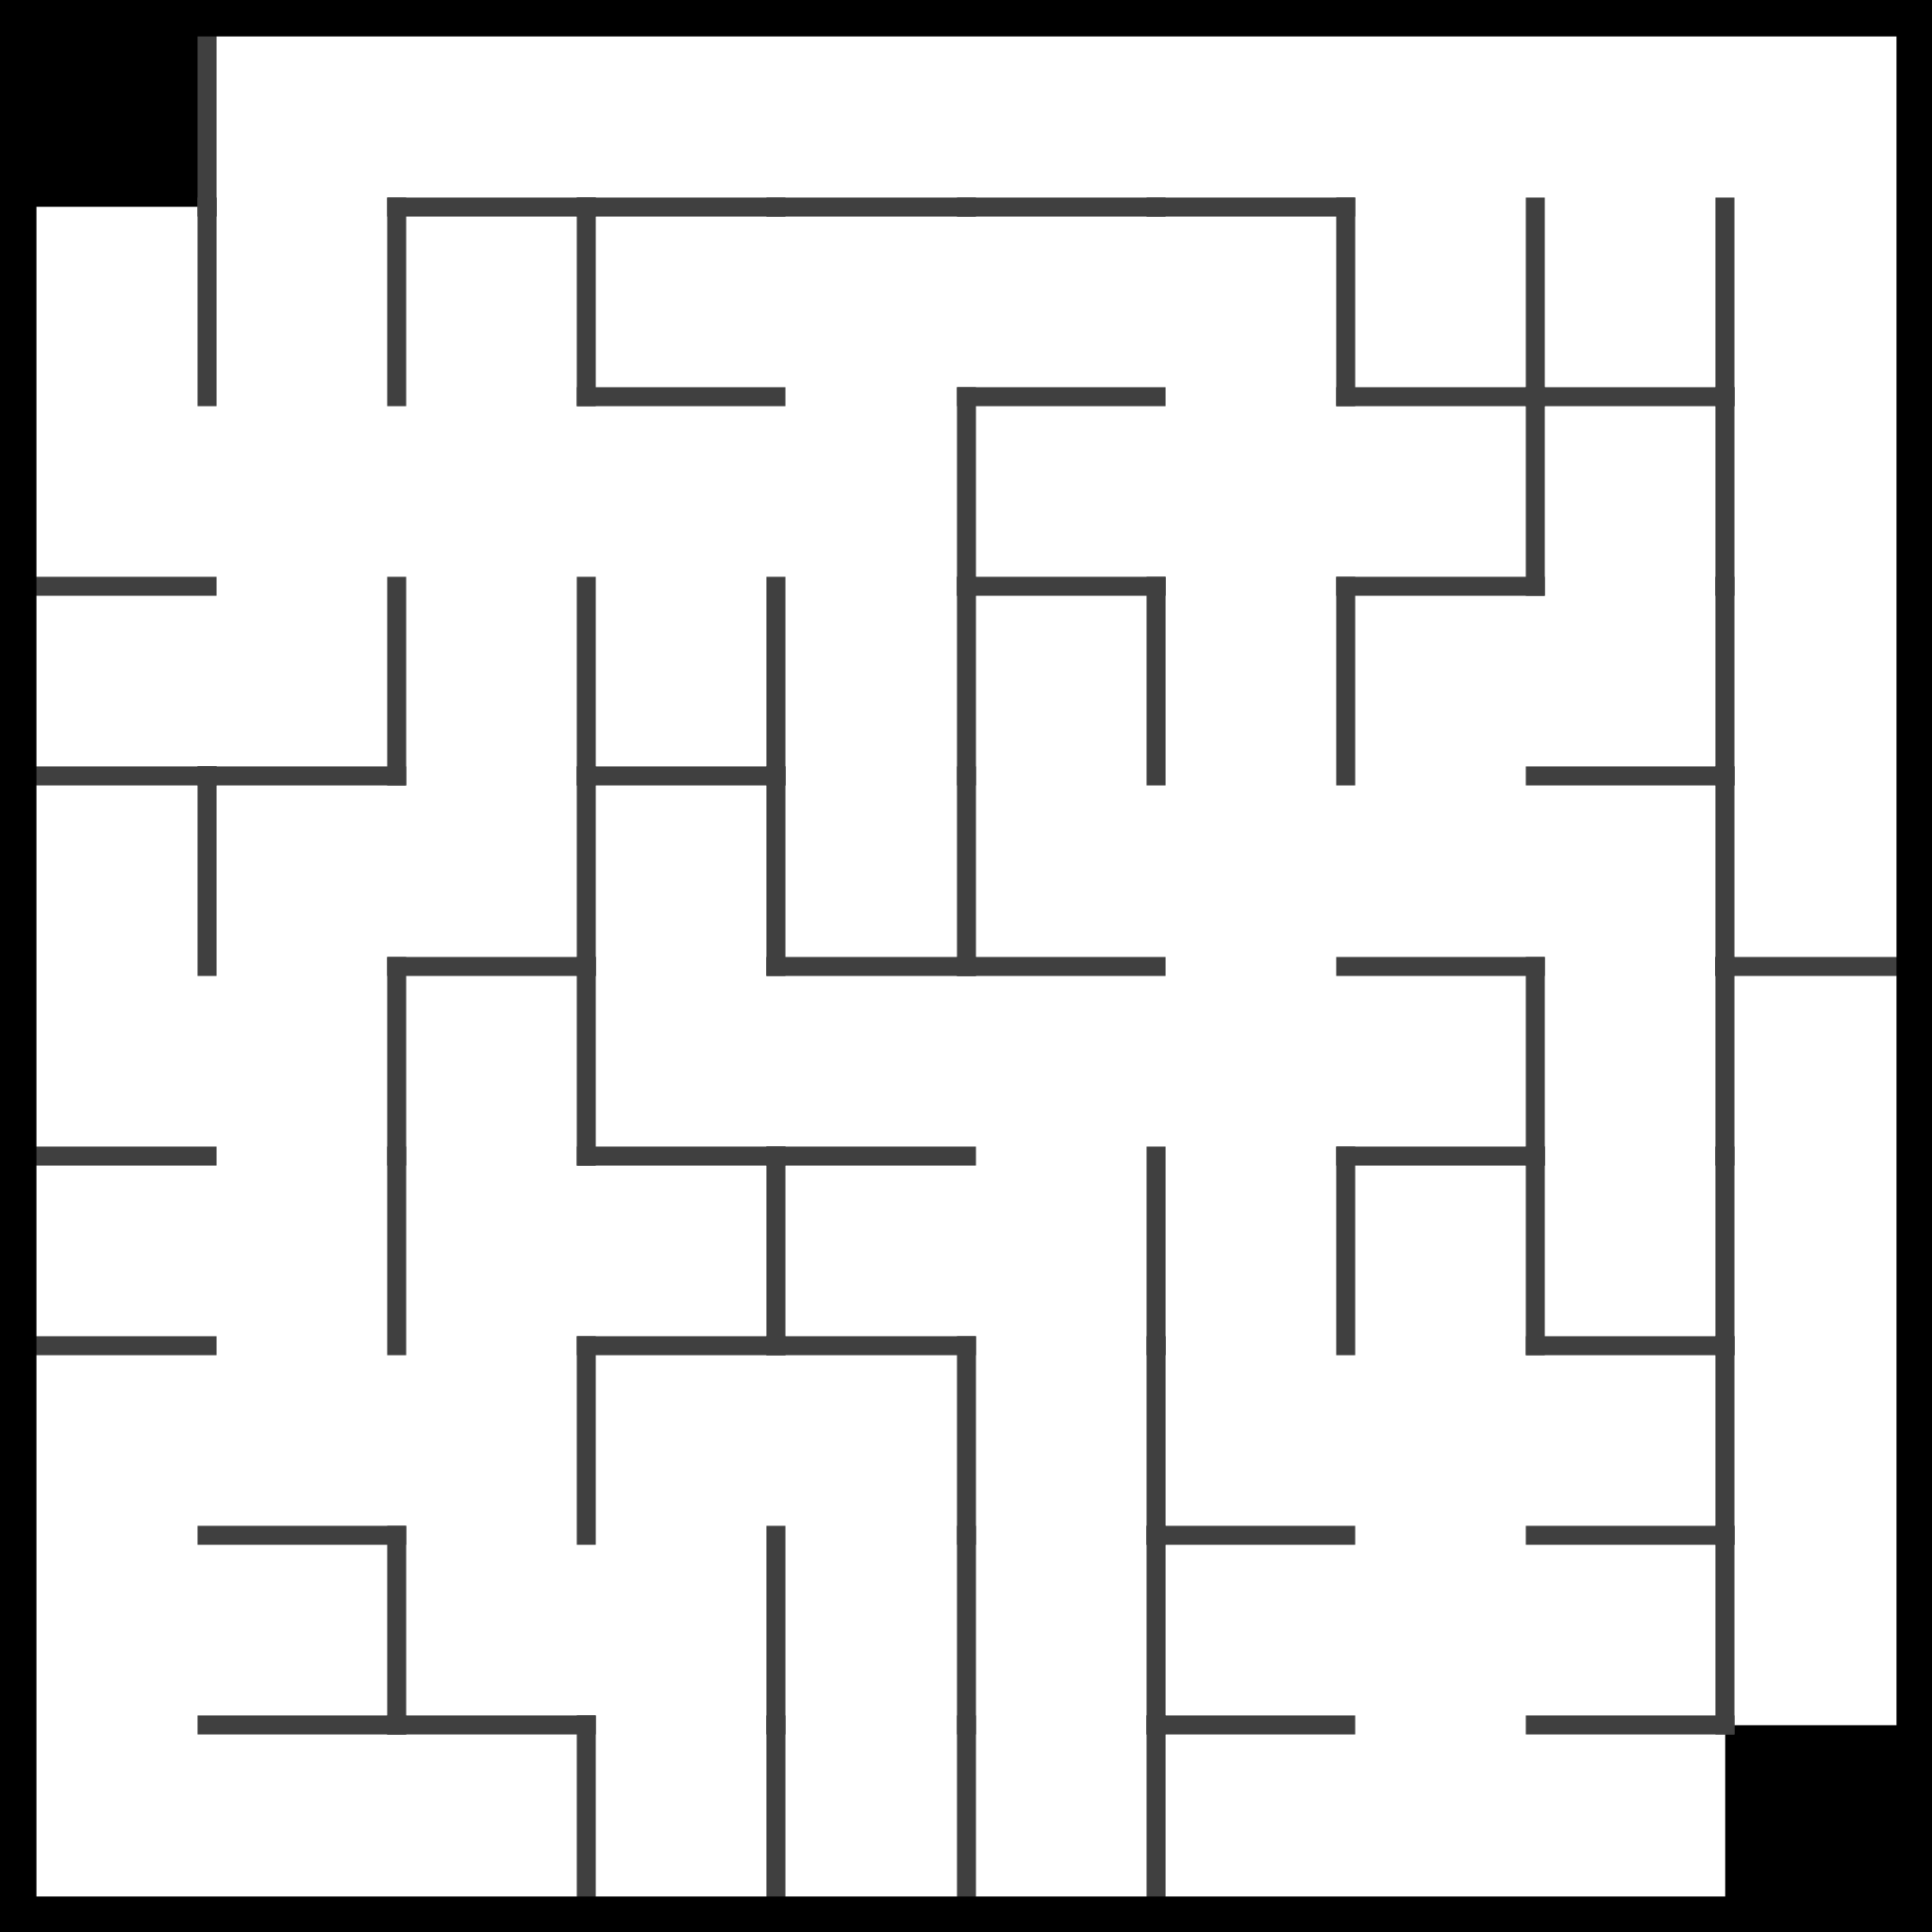 Maze clipart cool easy. Free cliparts download clip